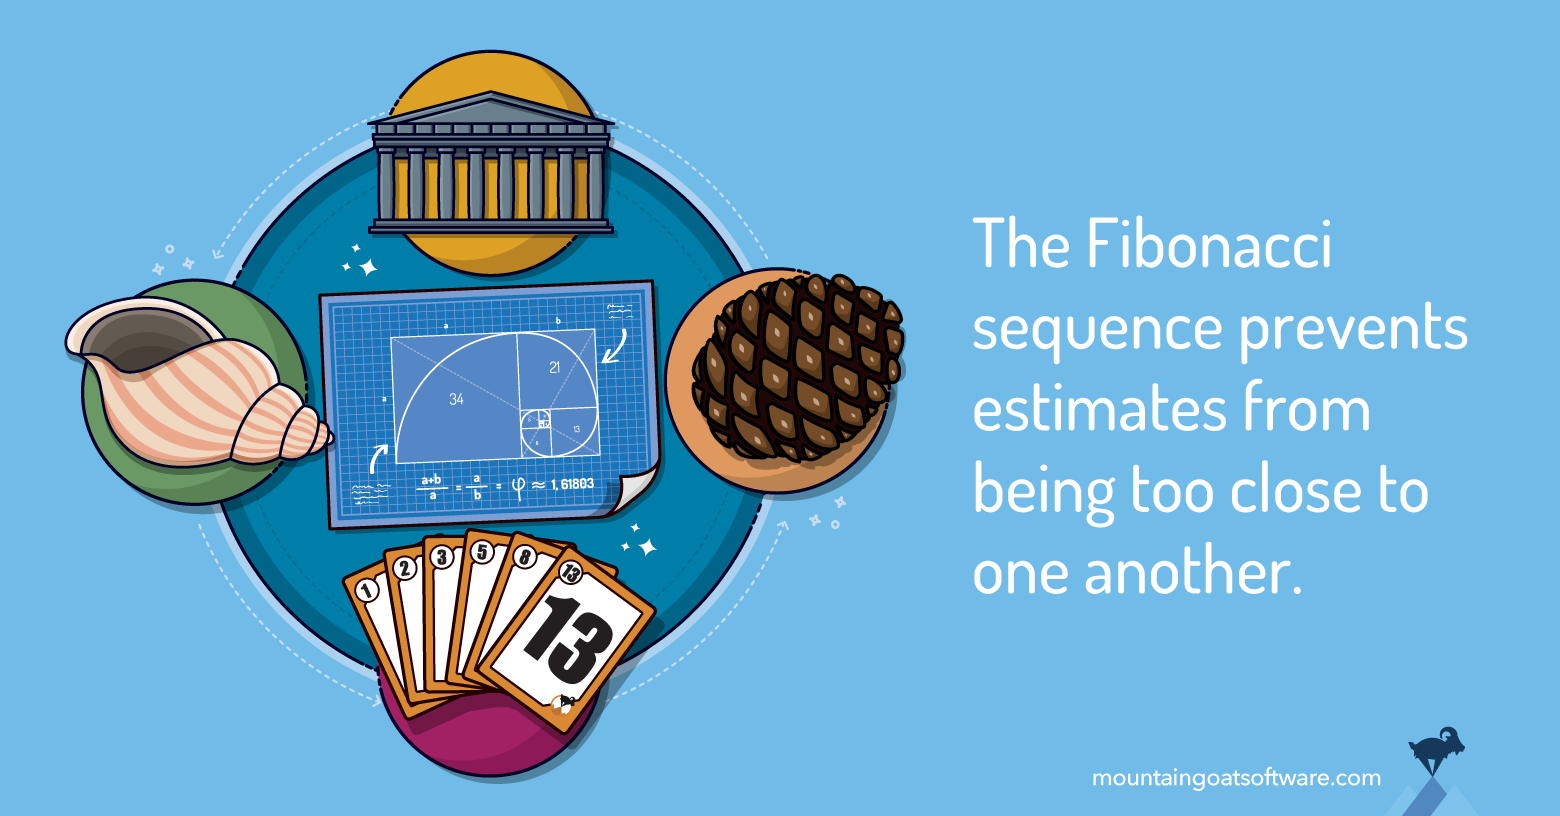 Why the Fibonacci Sequence Works Well for Estimating